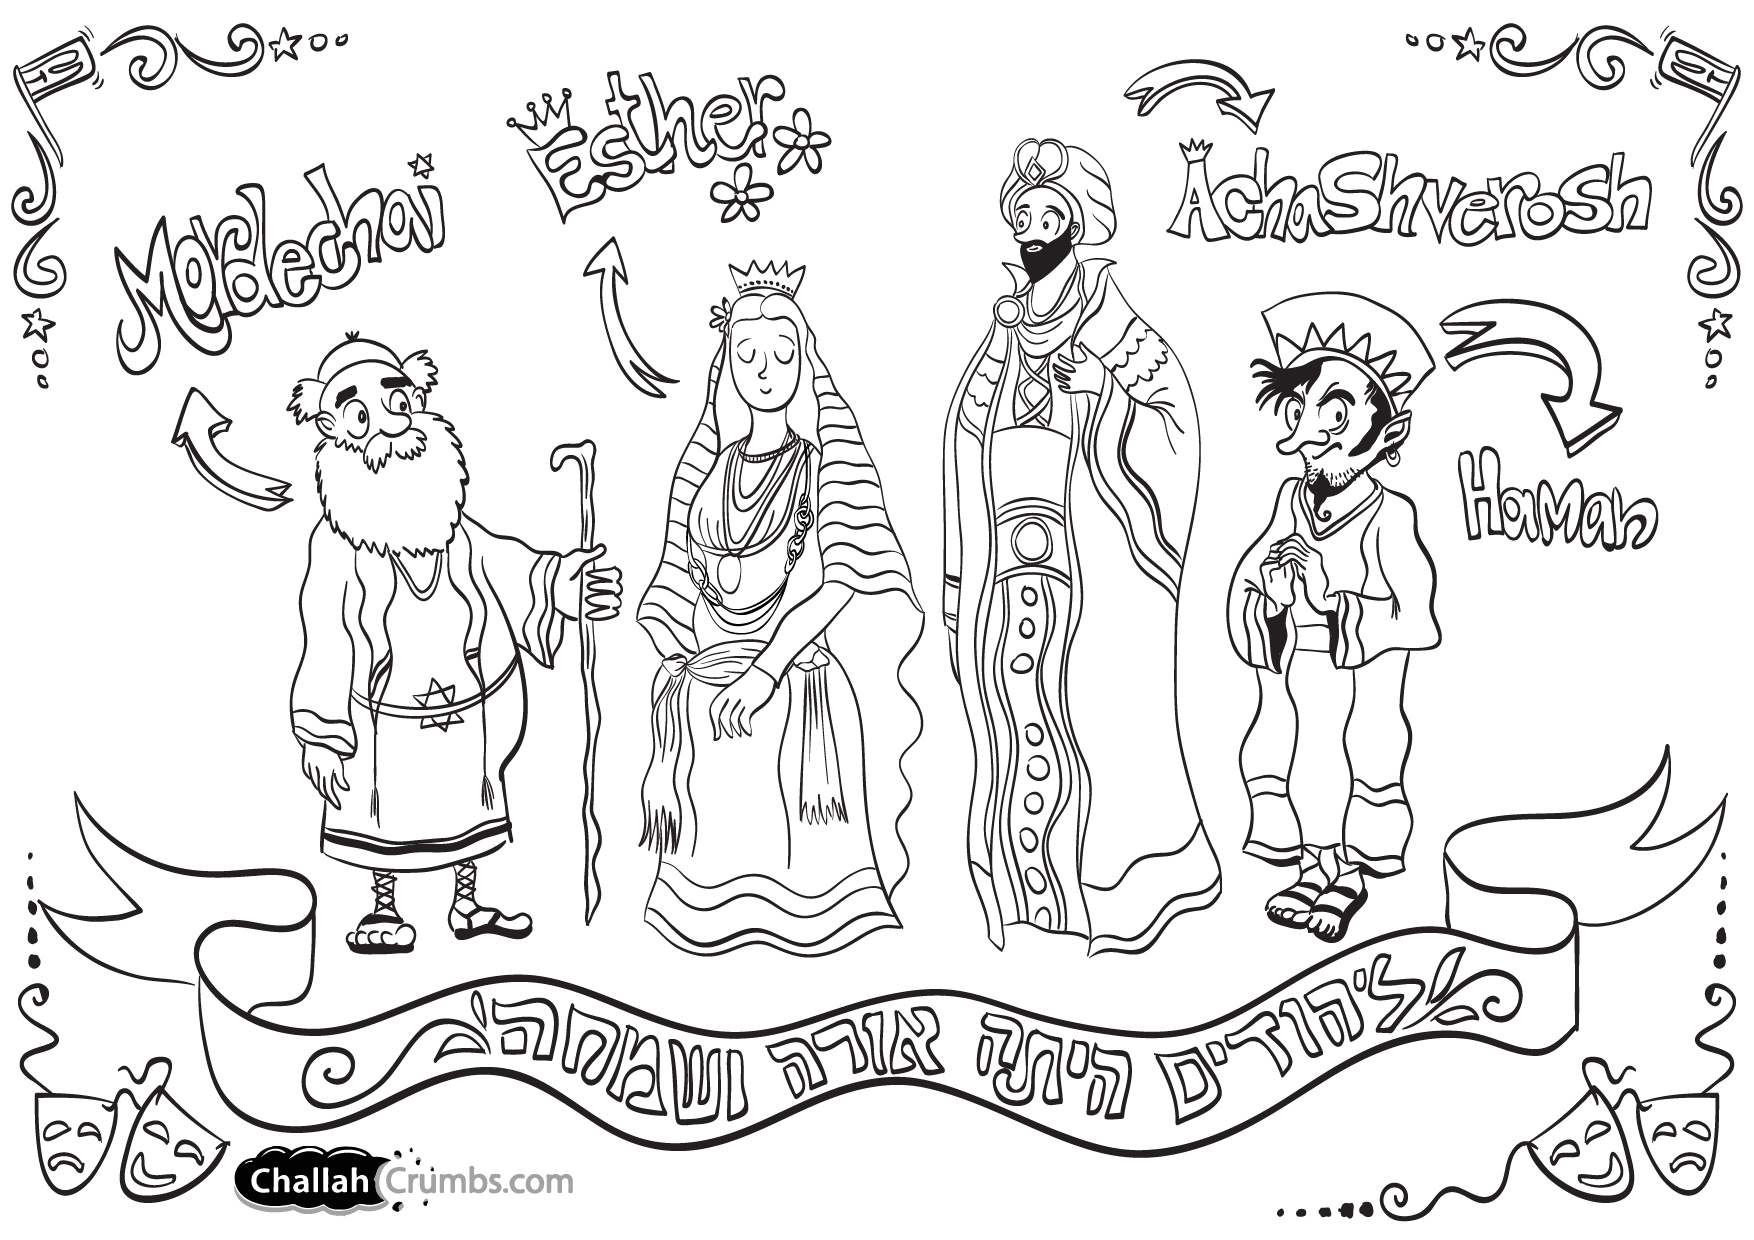 Free Queen Esther Coloring Pages Pictures To Pin On Pinterest